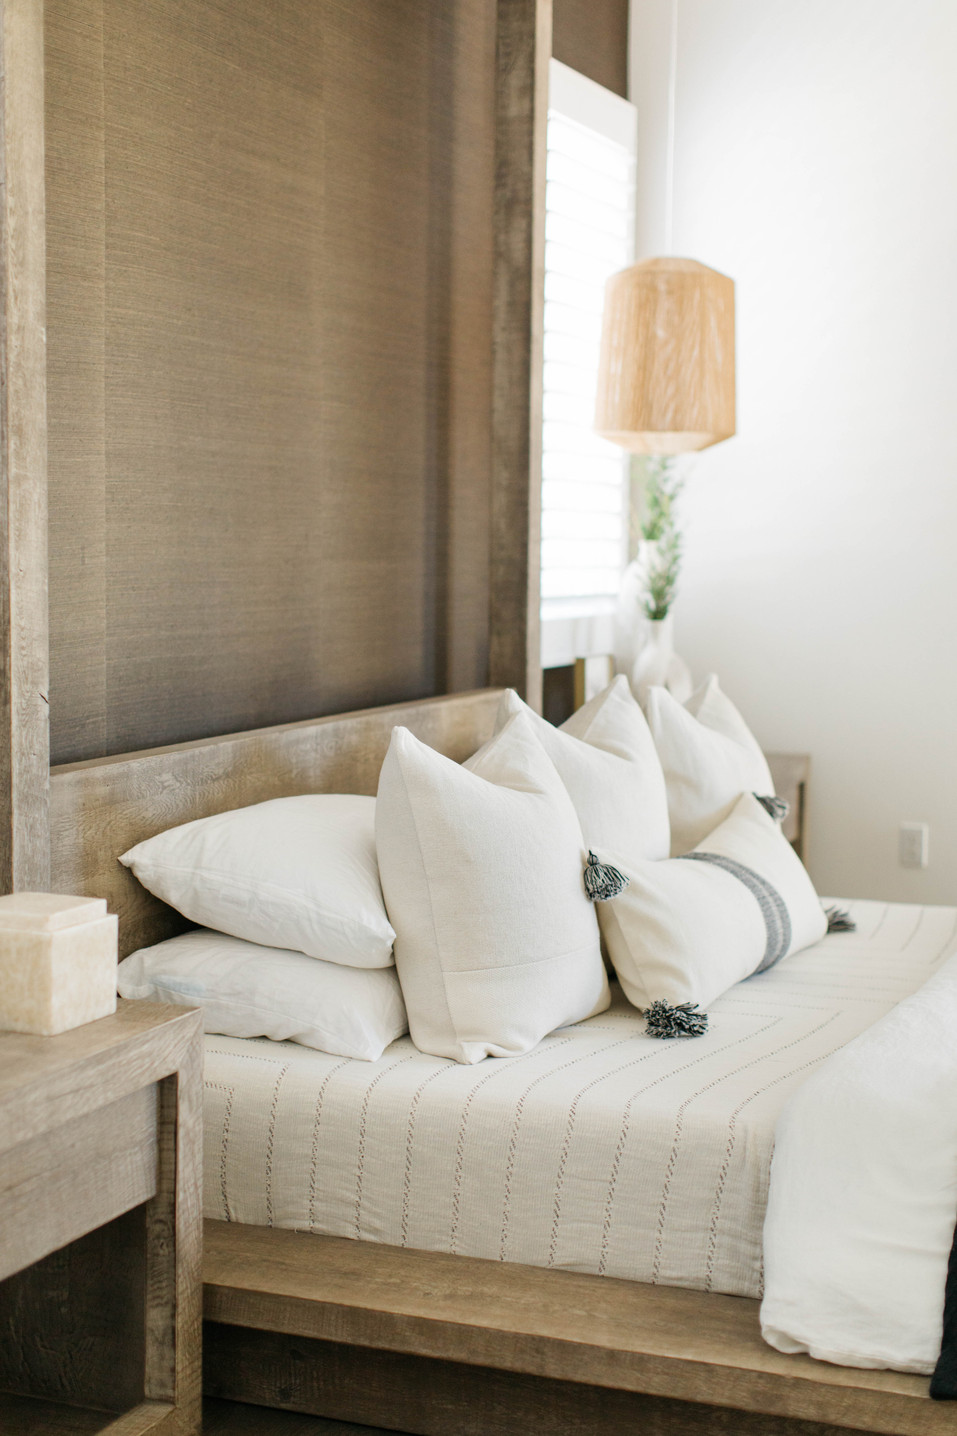 Jade + Tanner's Master Bedroom | Realm Design Co. San Diego, CA | Photographer Halli MaKennah